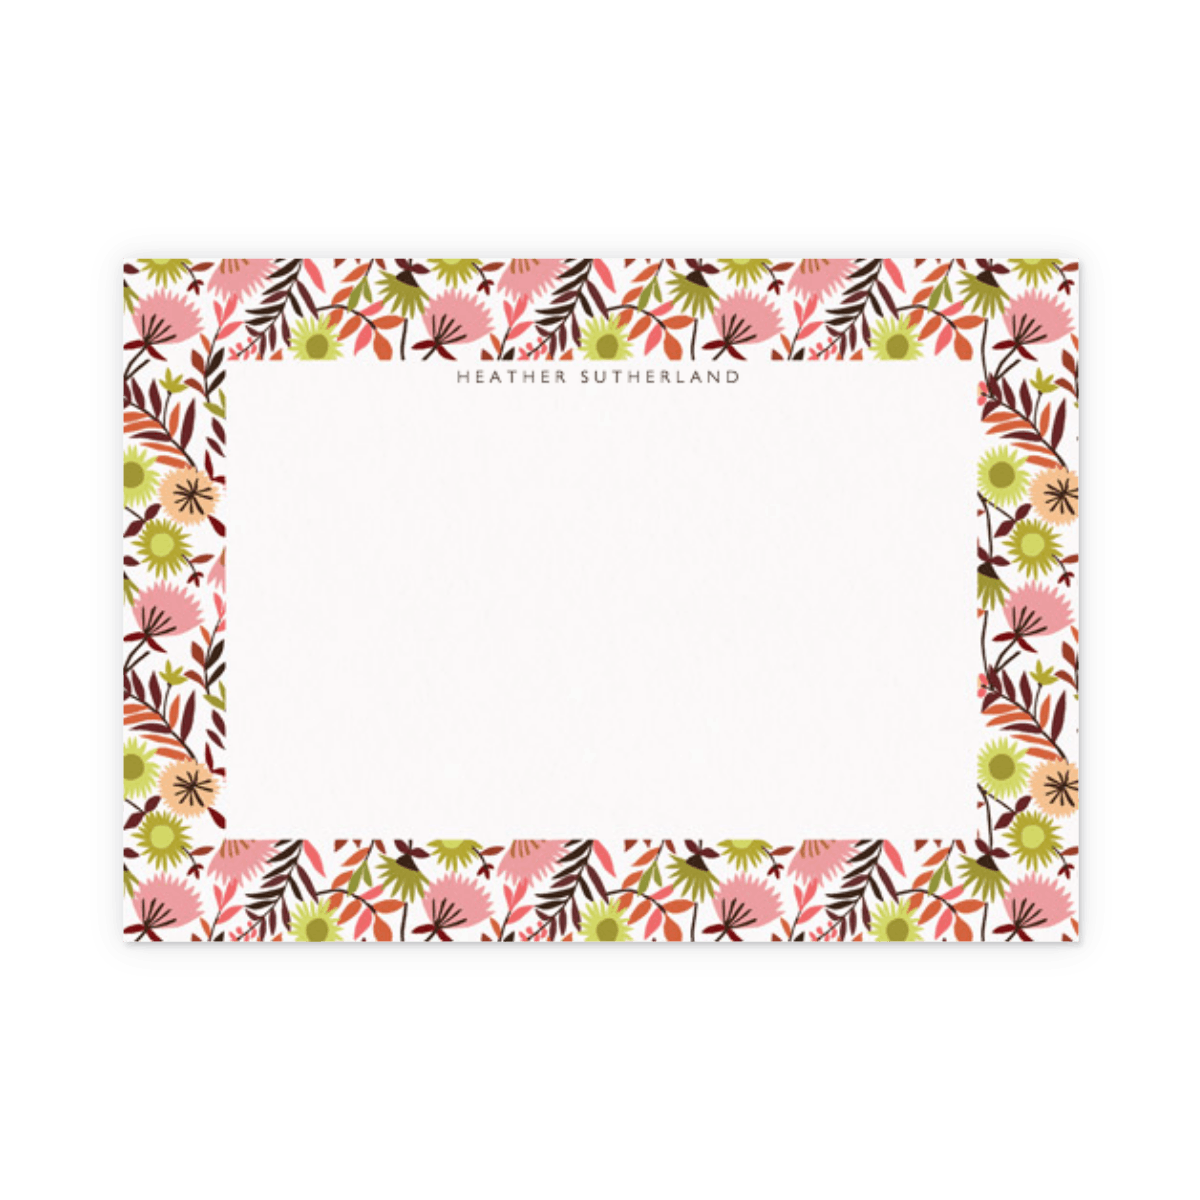 Https%3a%2f%2fwww.papier.com%2fproduct image%2f15908%2f10%2fmeadow flowers 4206 front 1551210314.png?ixlib=rb 1.1